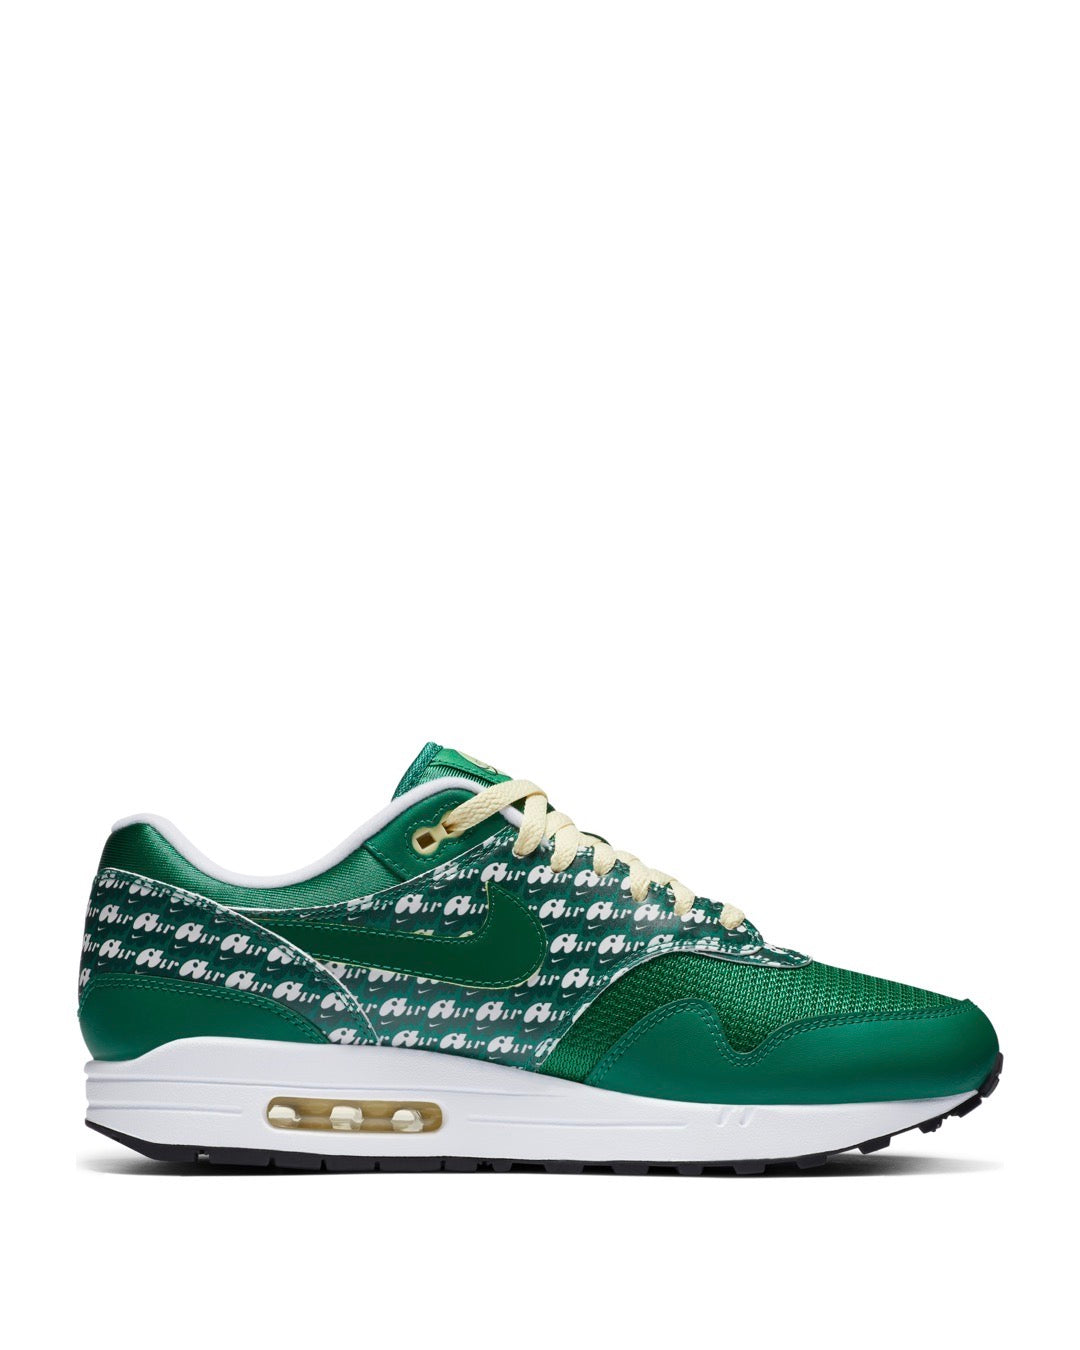 Air Max 1 Premium Pine Green/Pine Green/True White